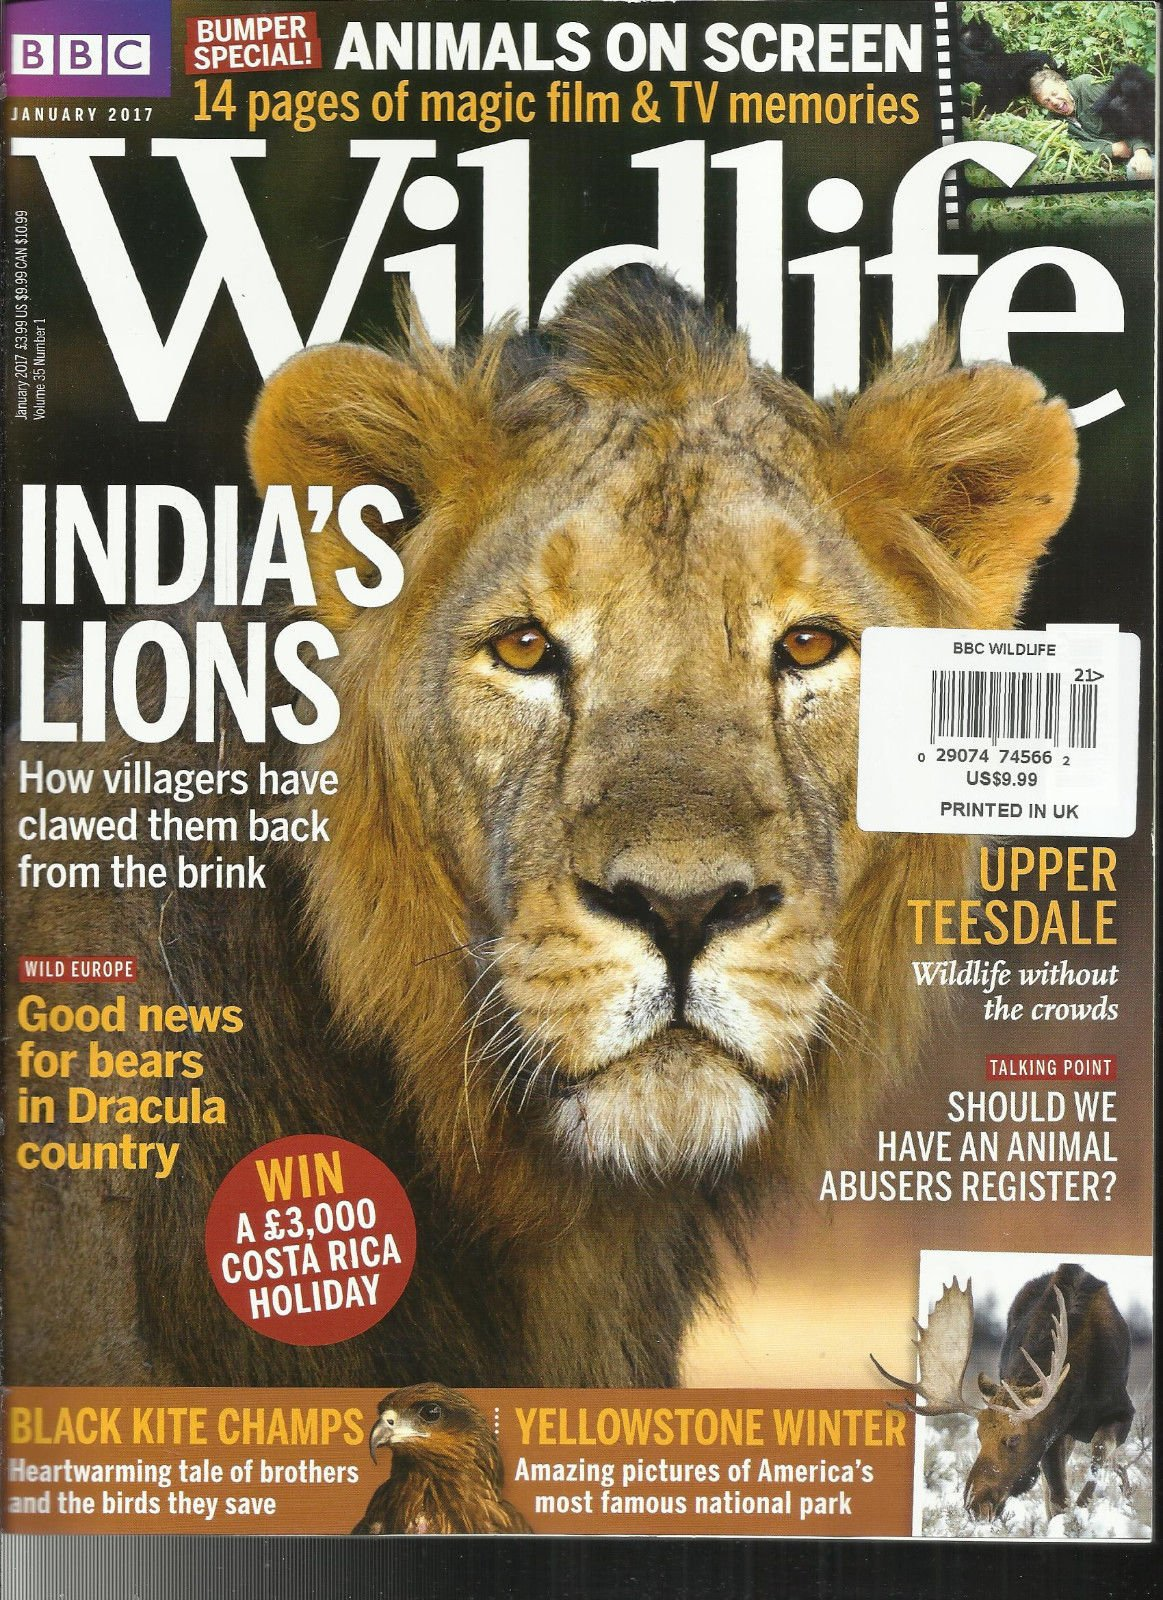 BBC WILD LIFE MAGAZINE, JANUARY, 2017 VOL. 39 NO. 1 ANIMAL ON SCREEN